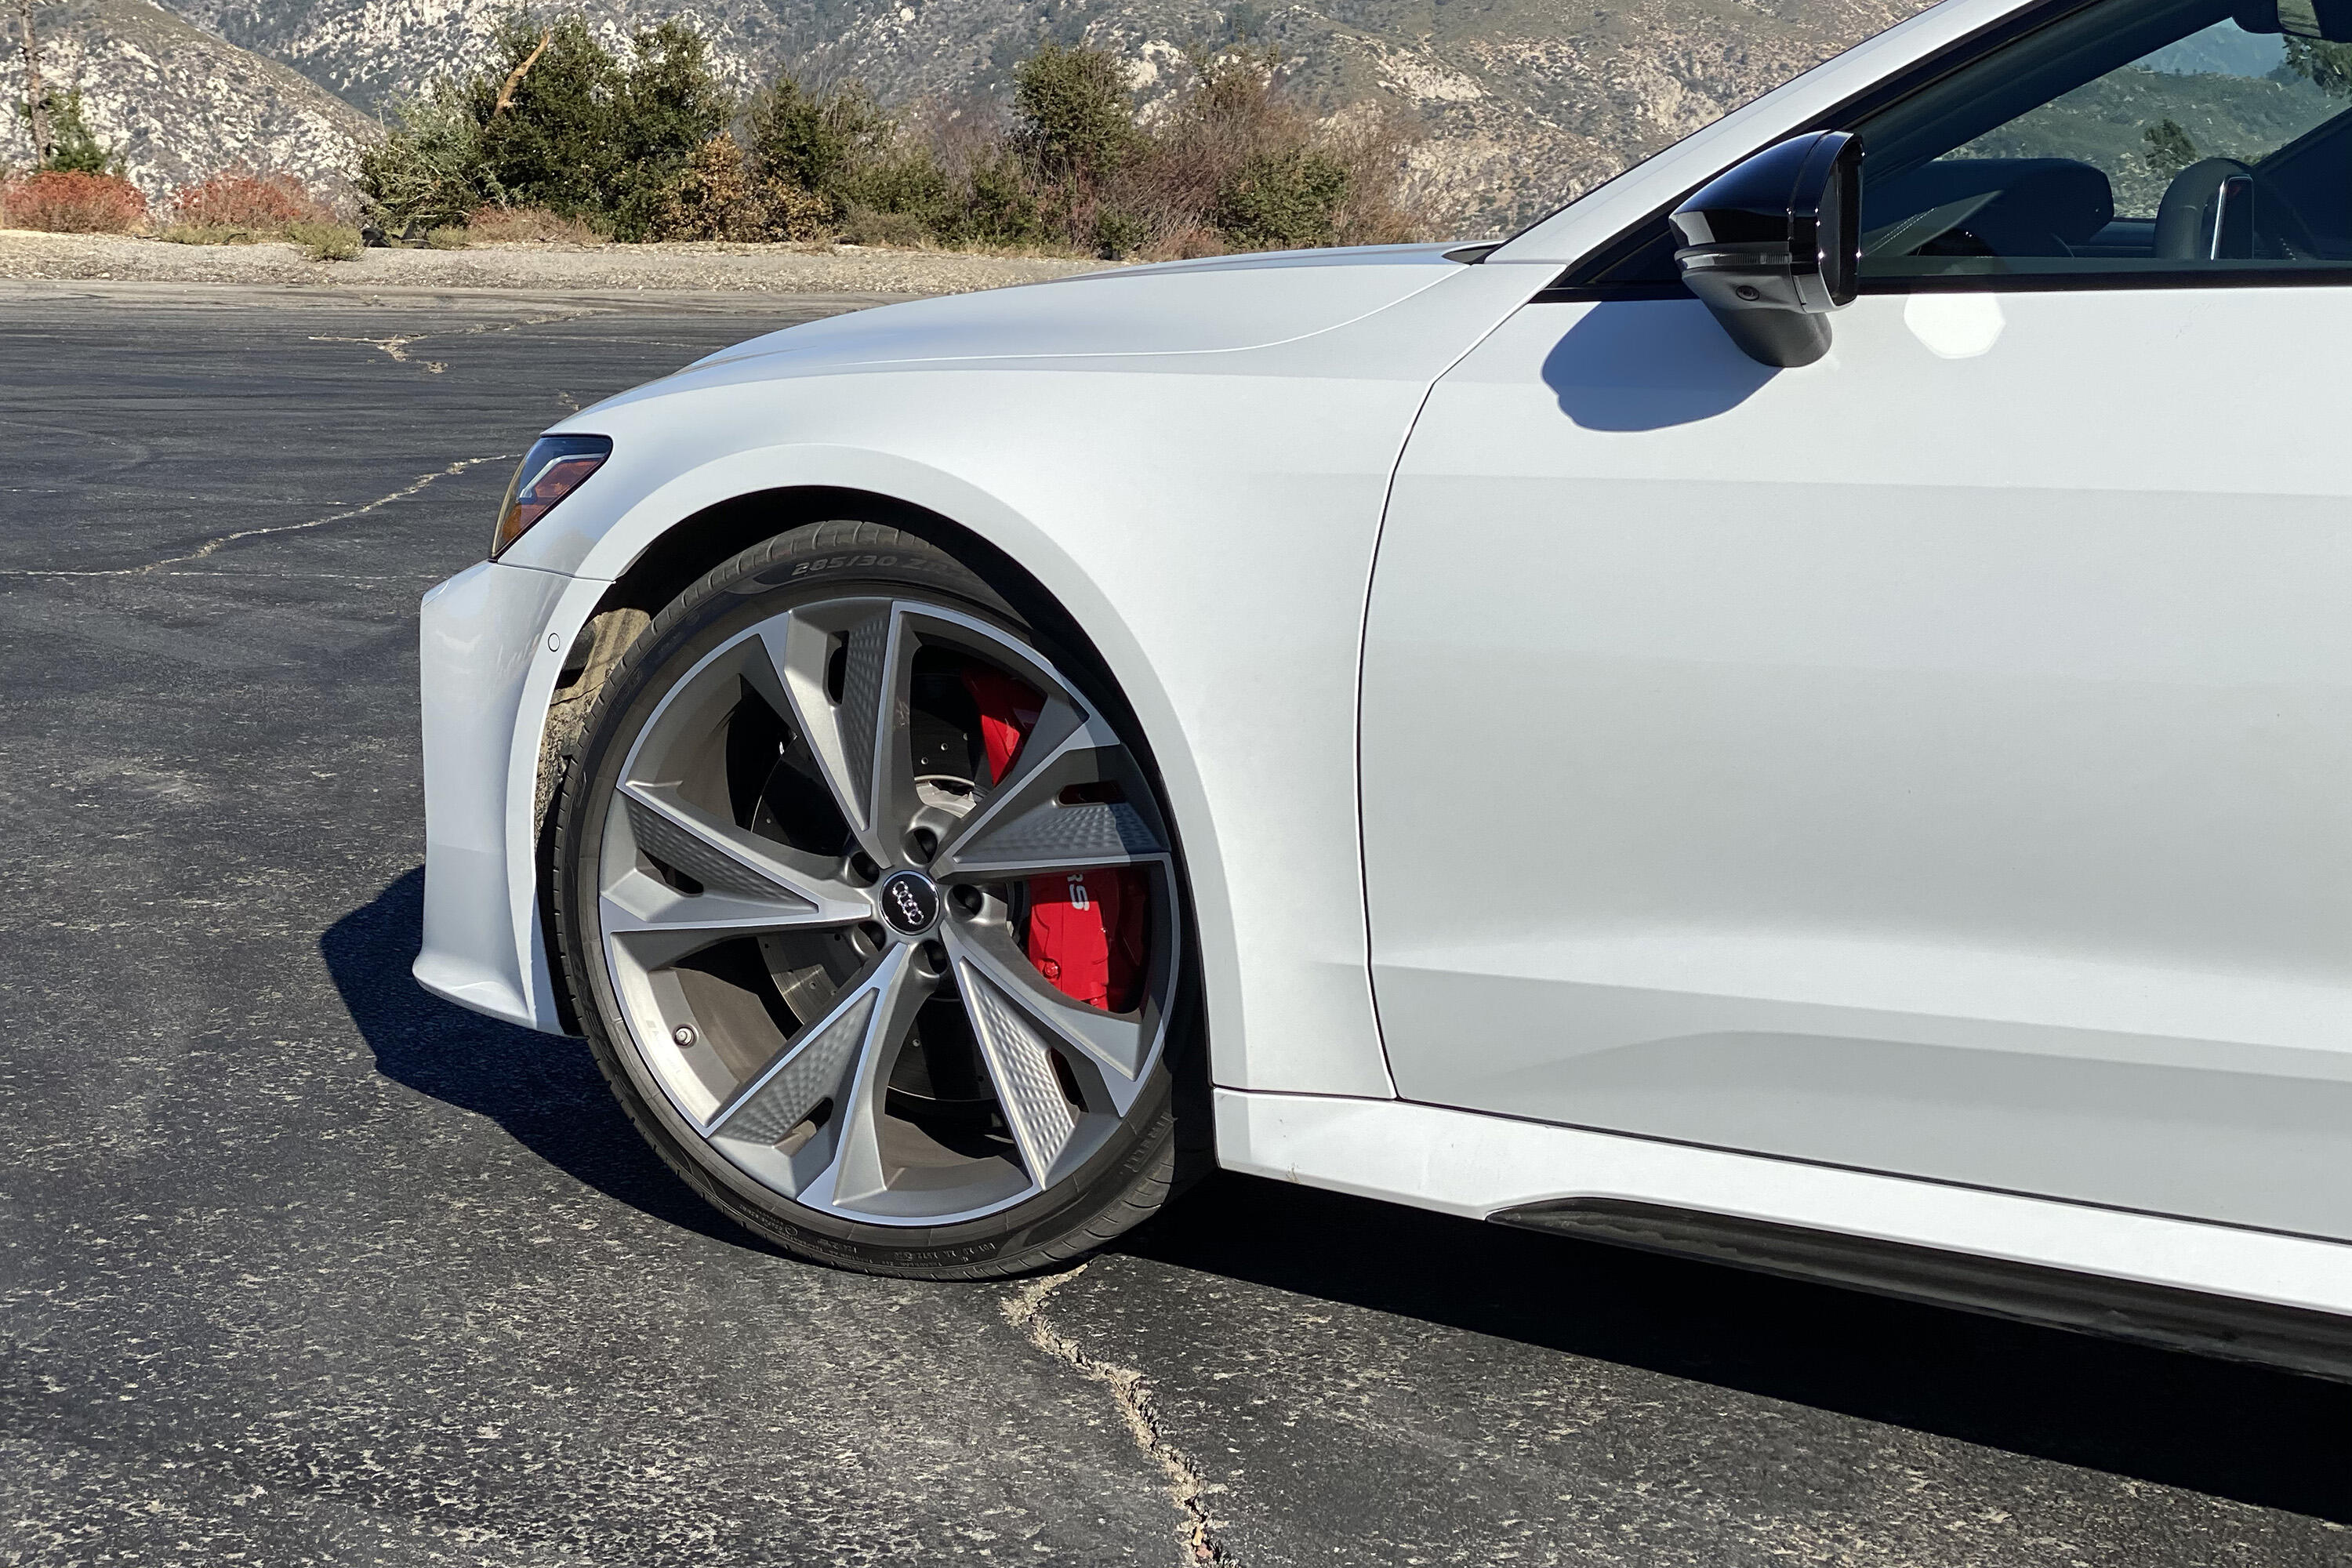 2021 Audi RS7 - 22-inch wheels and fenders